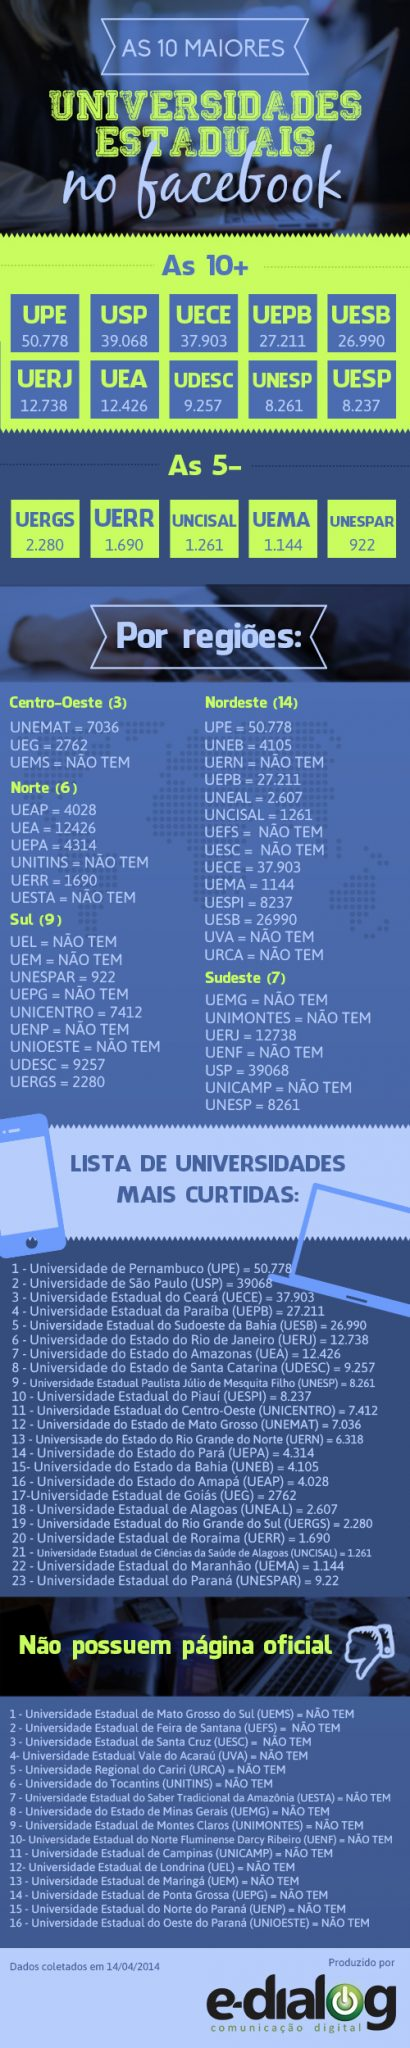 Universidade-Estaduais-no-Facebook